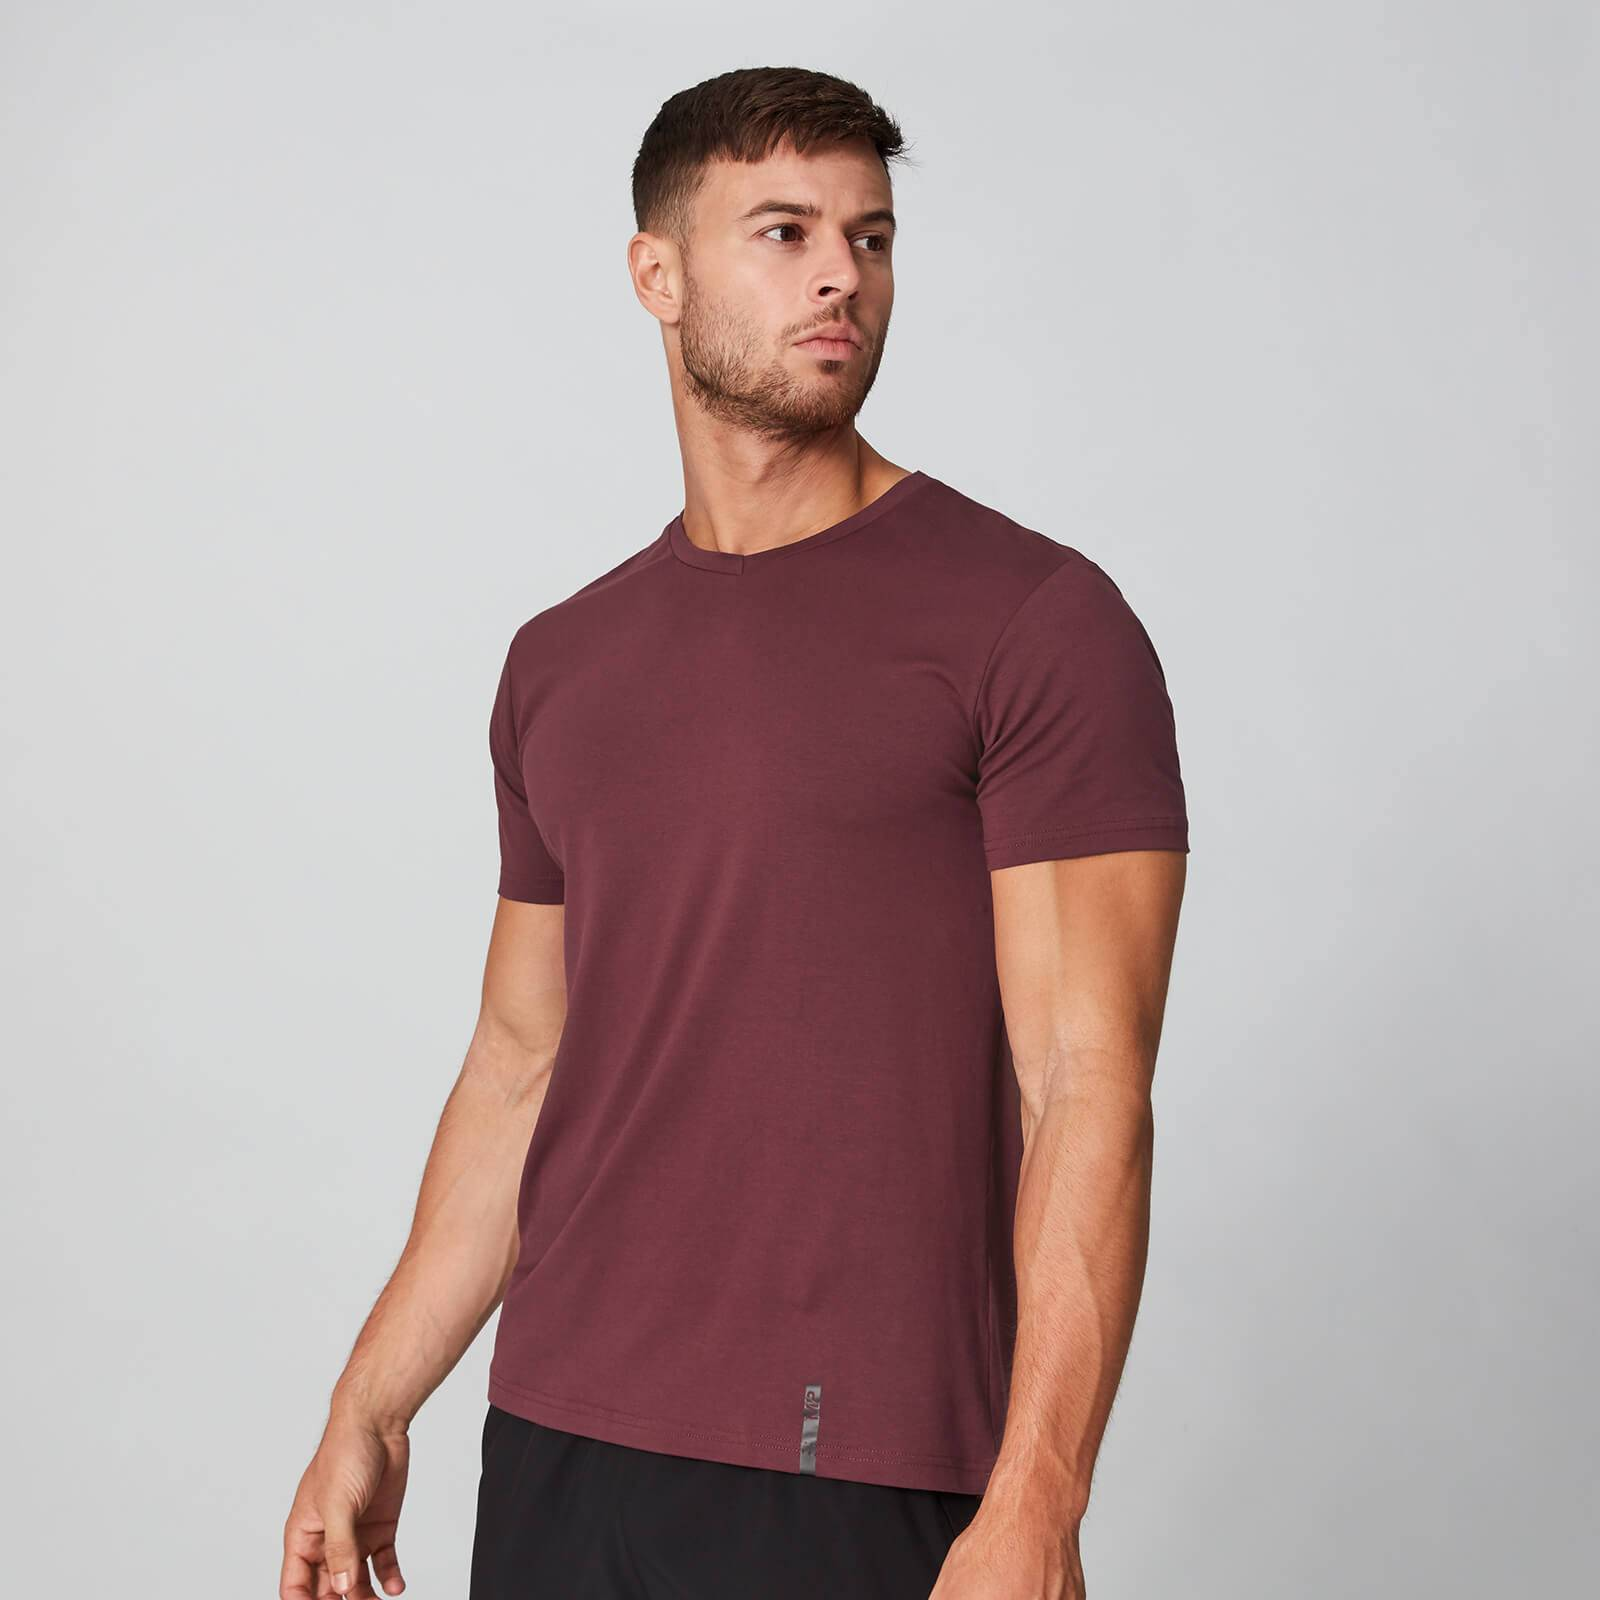 Myprotein Luxe Classic V-Neck T-Shirt - Oxblood - M